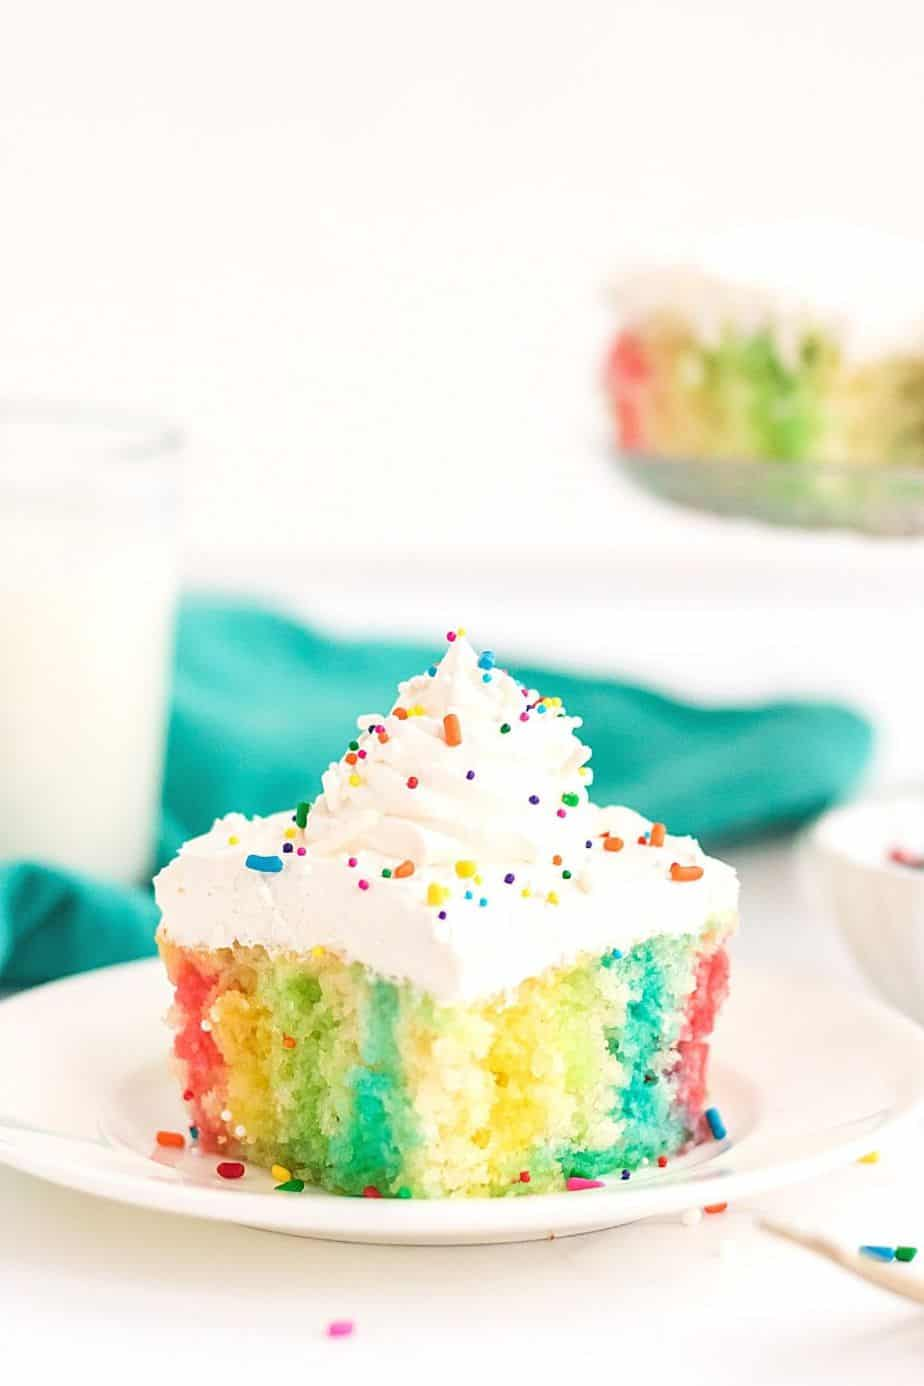 Make a colorful, moist, and utterly delicious cake within minutes with this Rainbow Poke Cake recipe. It is full of flavor and plenty of fun colors, including shades of pink, blue, and yellow!